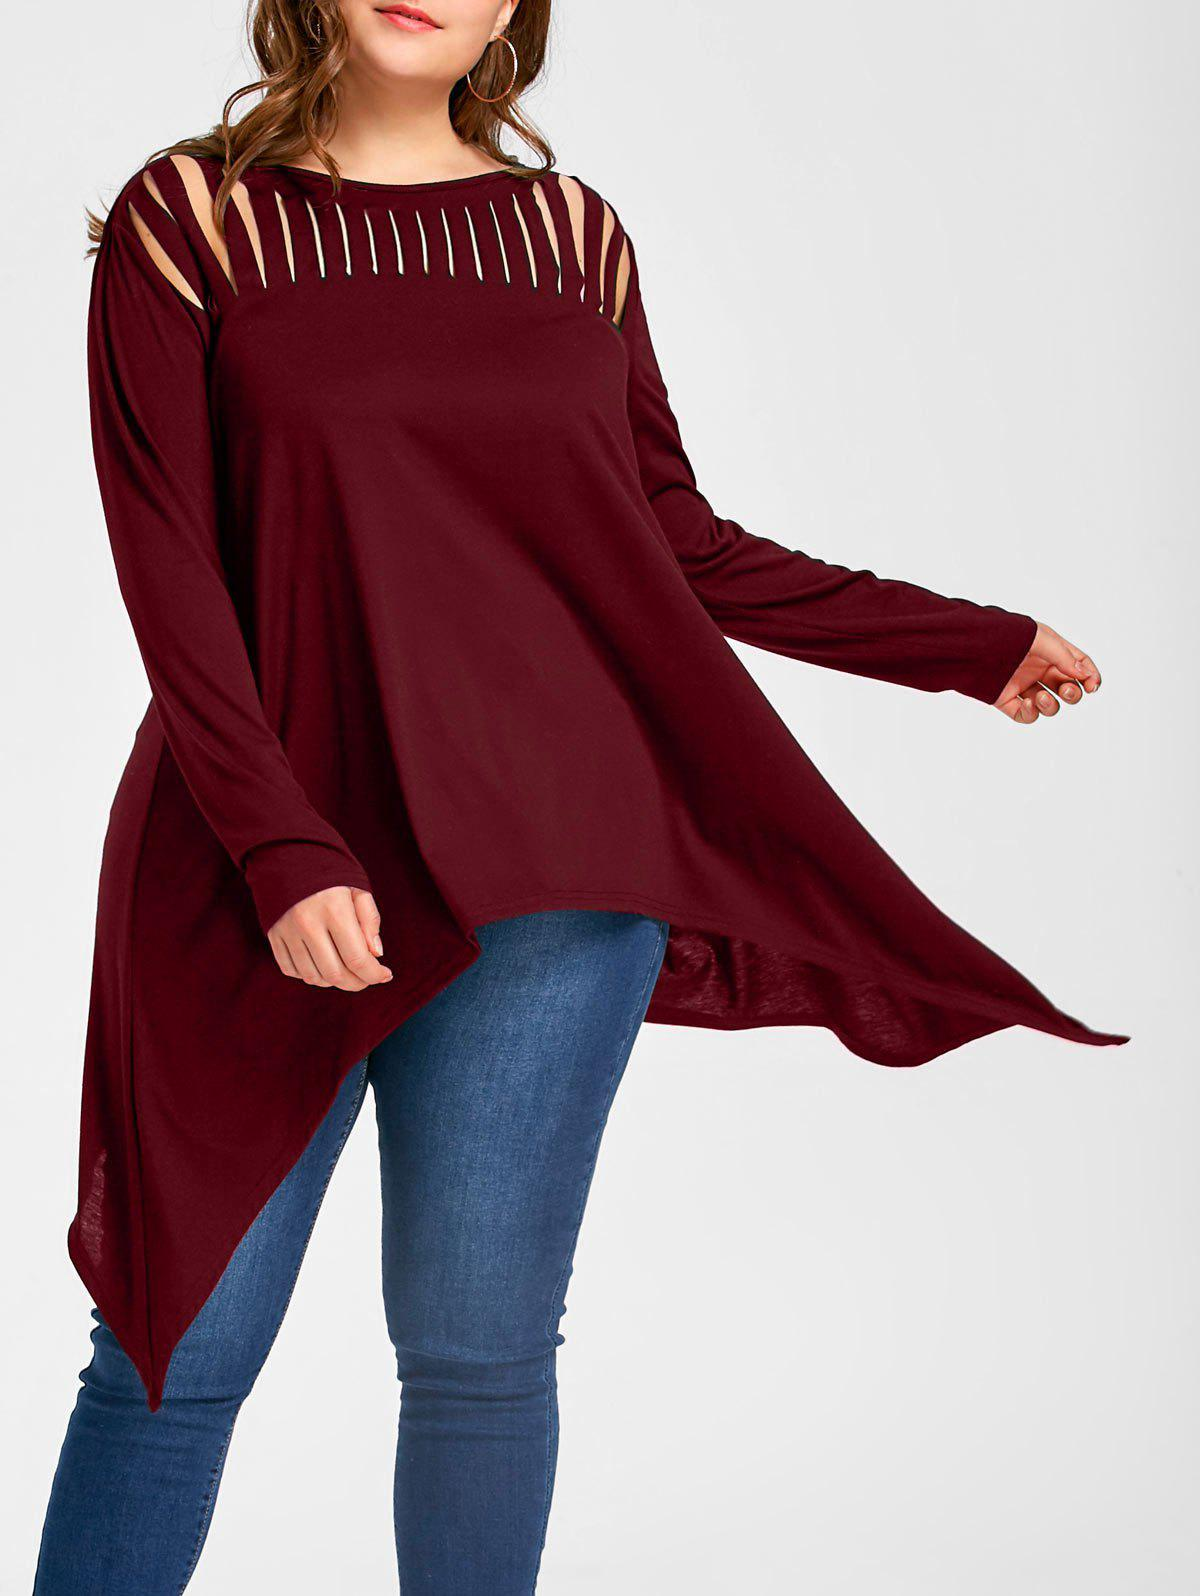 Plus Size Ripped Crescent Hem Tunic TopWOMEN<br><br>Size: XL; Color: WINE RED; Material: Polyester,Spandex; Shirt Length: Long; Sleeve Length: Full; Collar: Slash Neck; Style: Casual; Season: Fall,Spring; Pattern Type: Solid; Weight: 0.3300kg; Package Contents: 1 x Top;